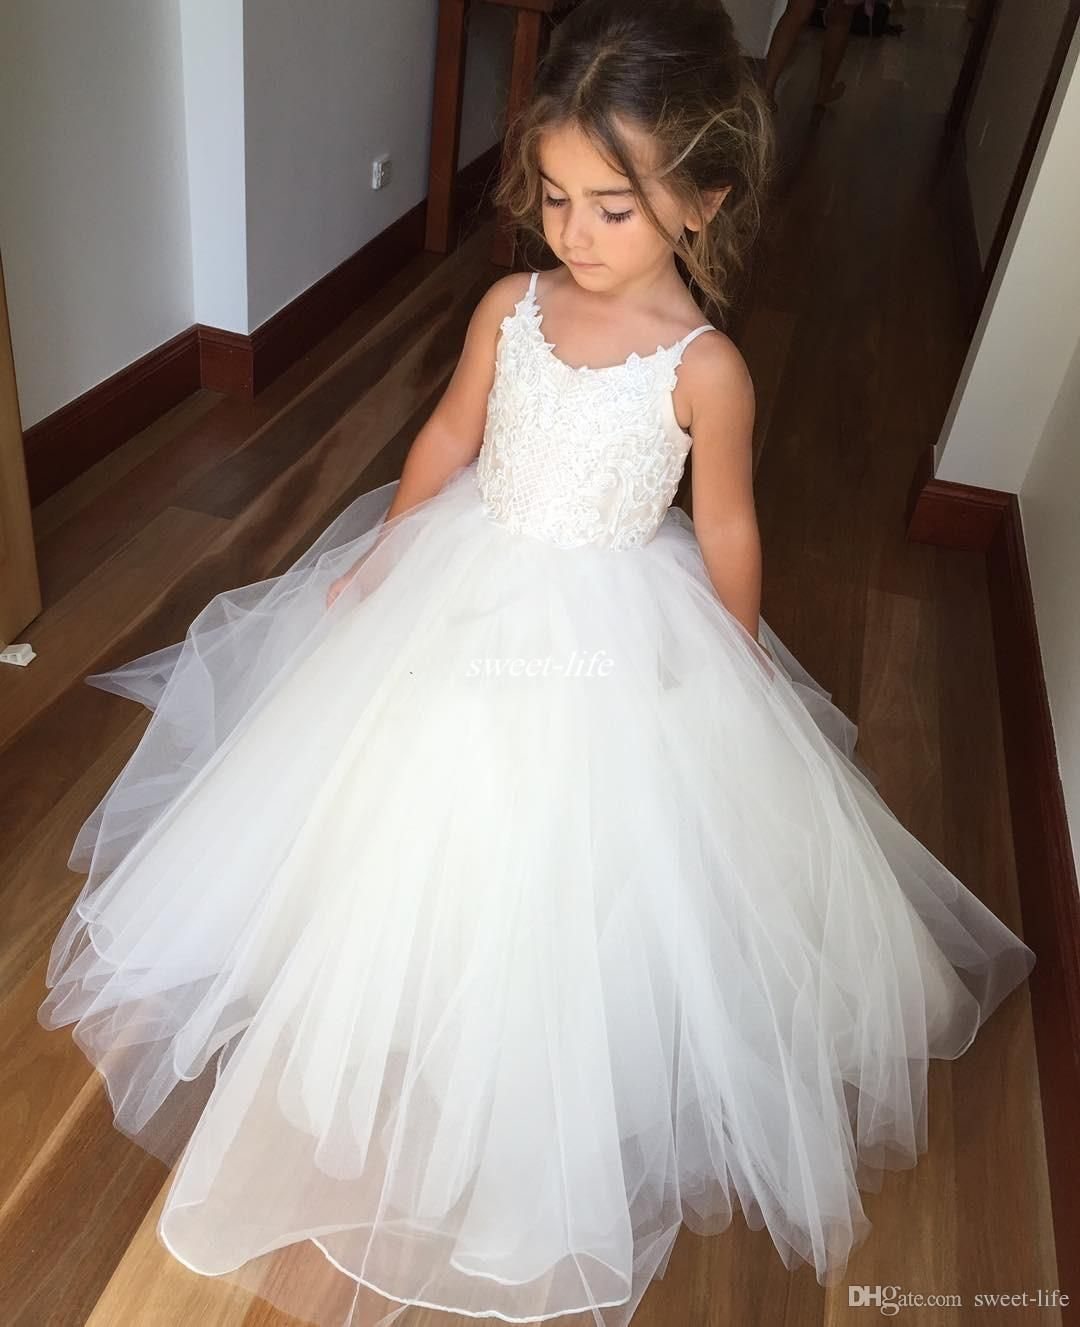 White ball gown tulle flower girl dresses for vintage wedding cheap flower girls dresses tulle lace top spaghetti formal kids wear for party 2016 toddler gowns izmirmasajfo Images